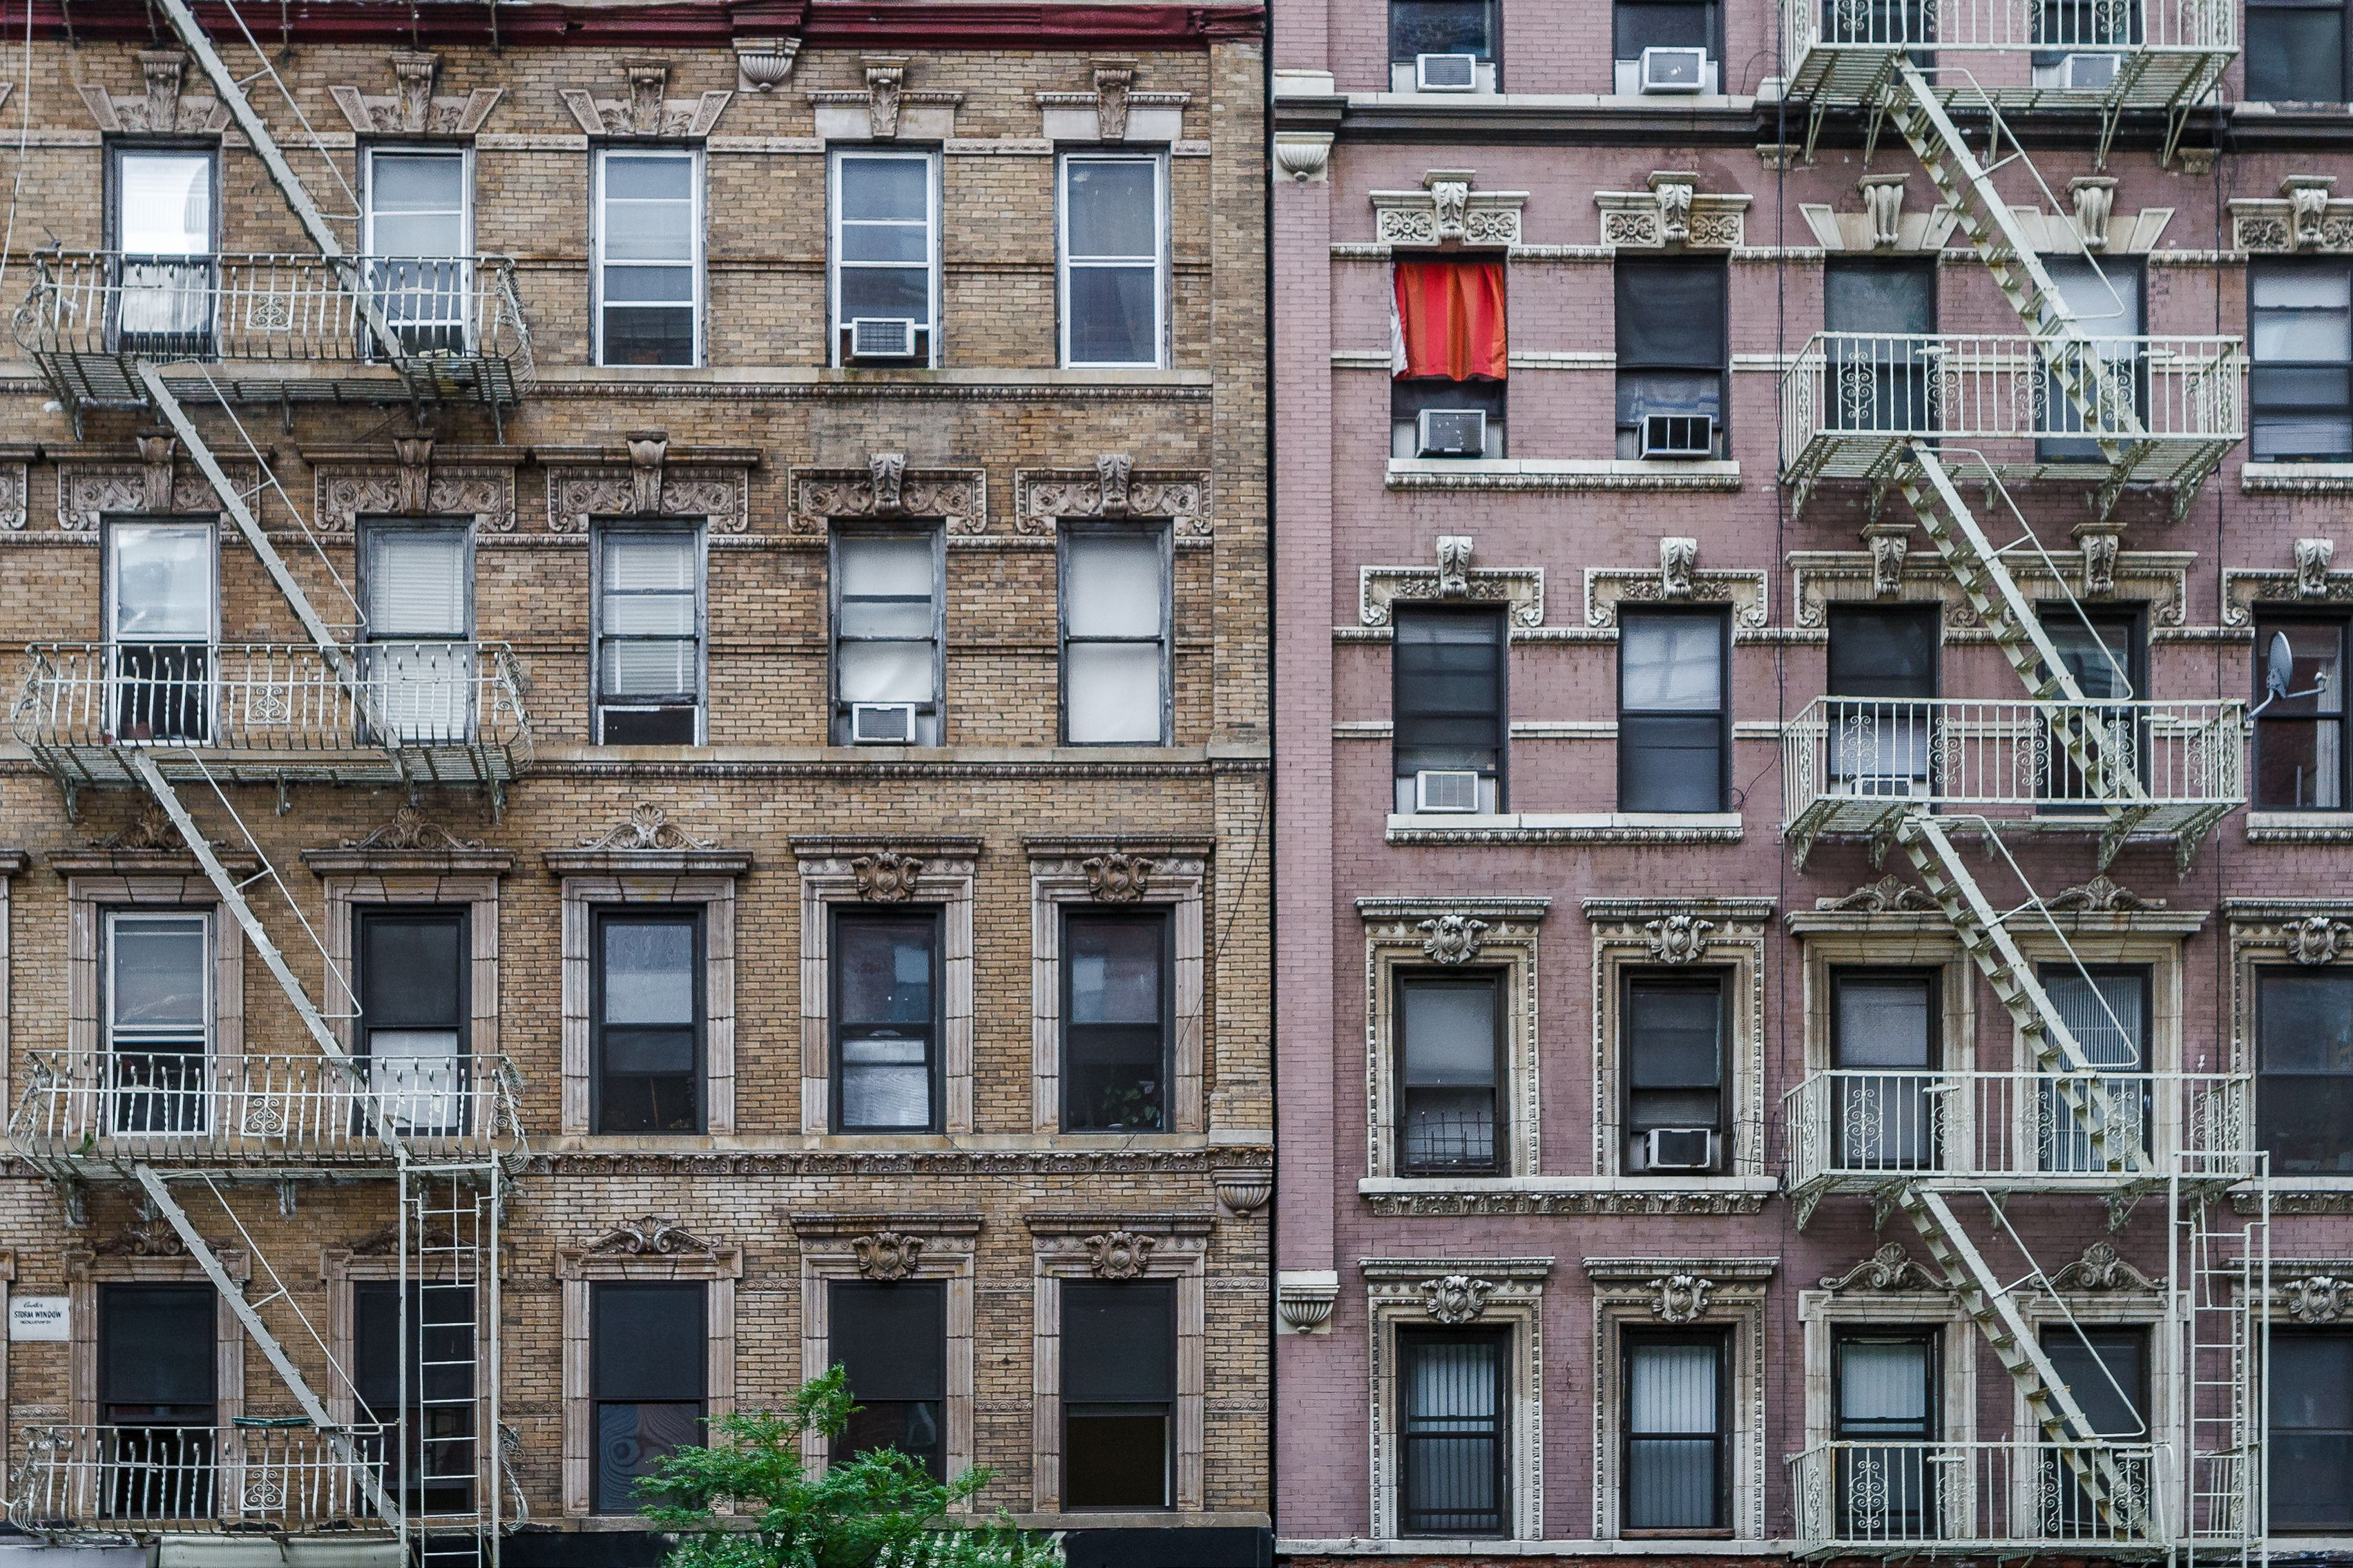 Cheapest Cities to Rent Apartments - Cost to Rent a One-Bedroom Apartment